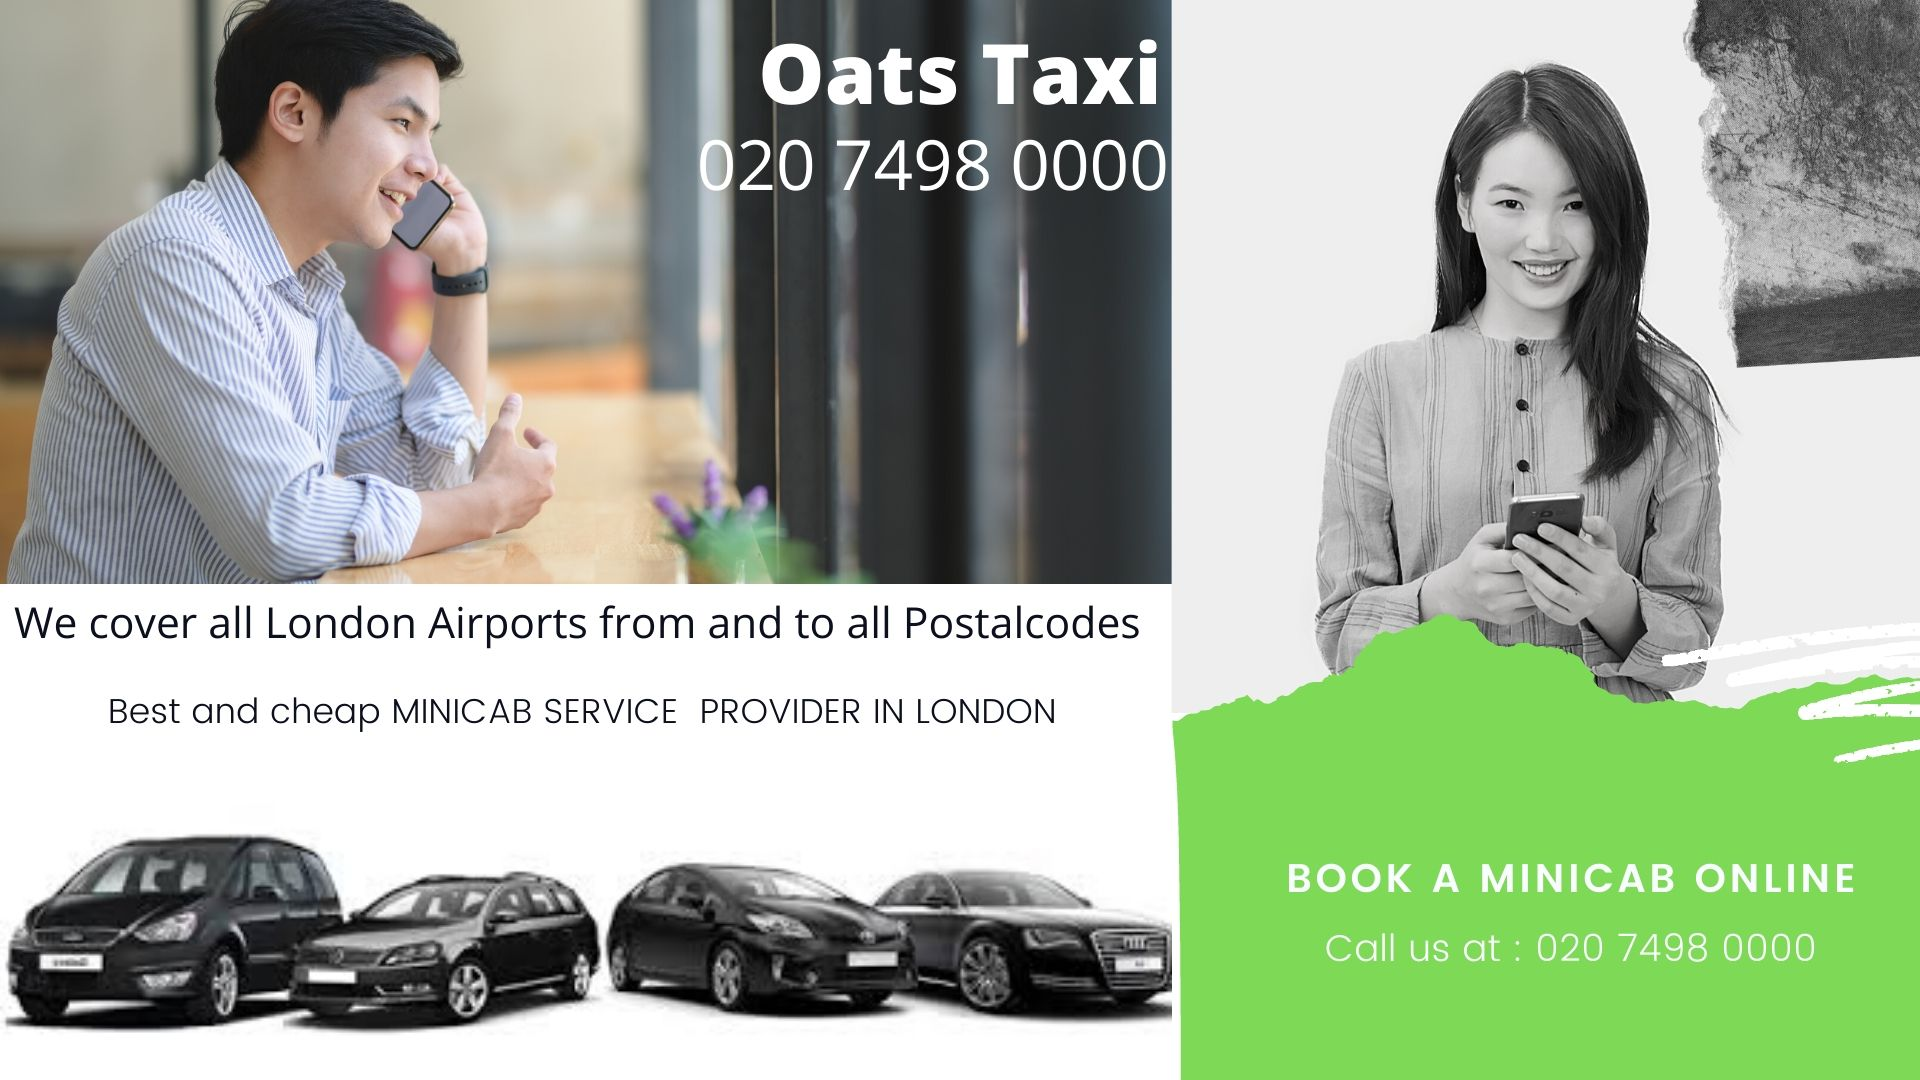 Nearest Taxi Office in Camberwell | Nearest Taxi Office in Gatwick Airport | Call now : 02074980000